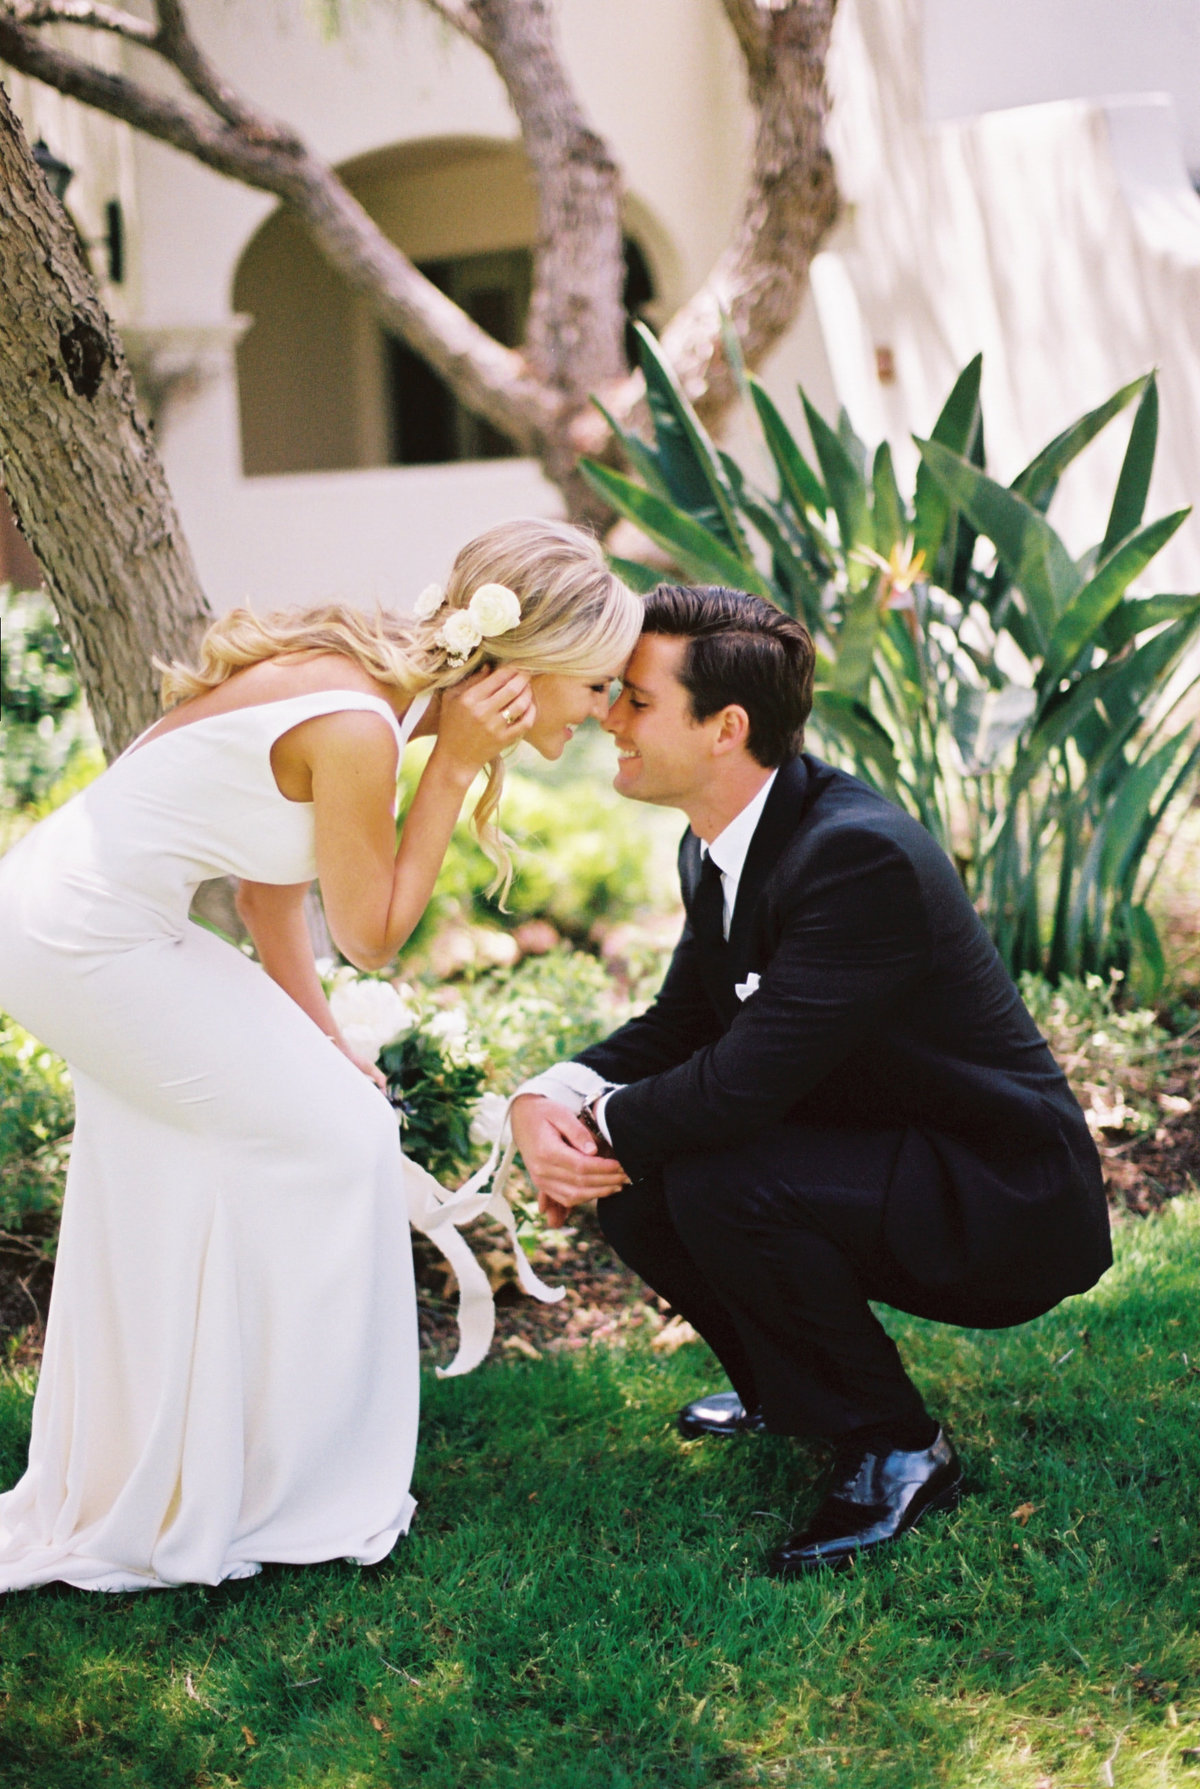 christianne_taylor_marika_fedalen_brian_olsen_bacara_weddings_wedding_christianne_taylor-15